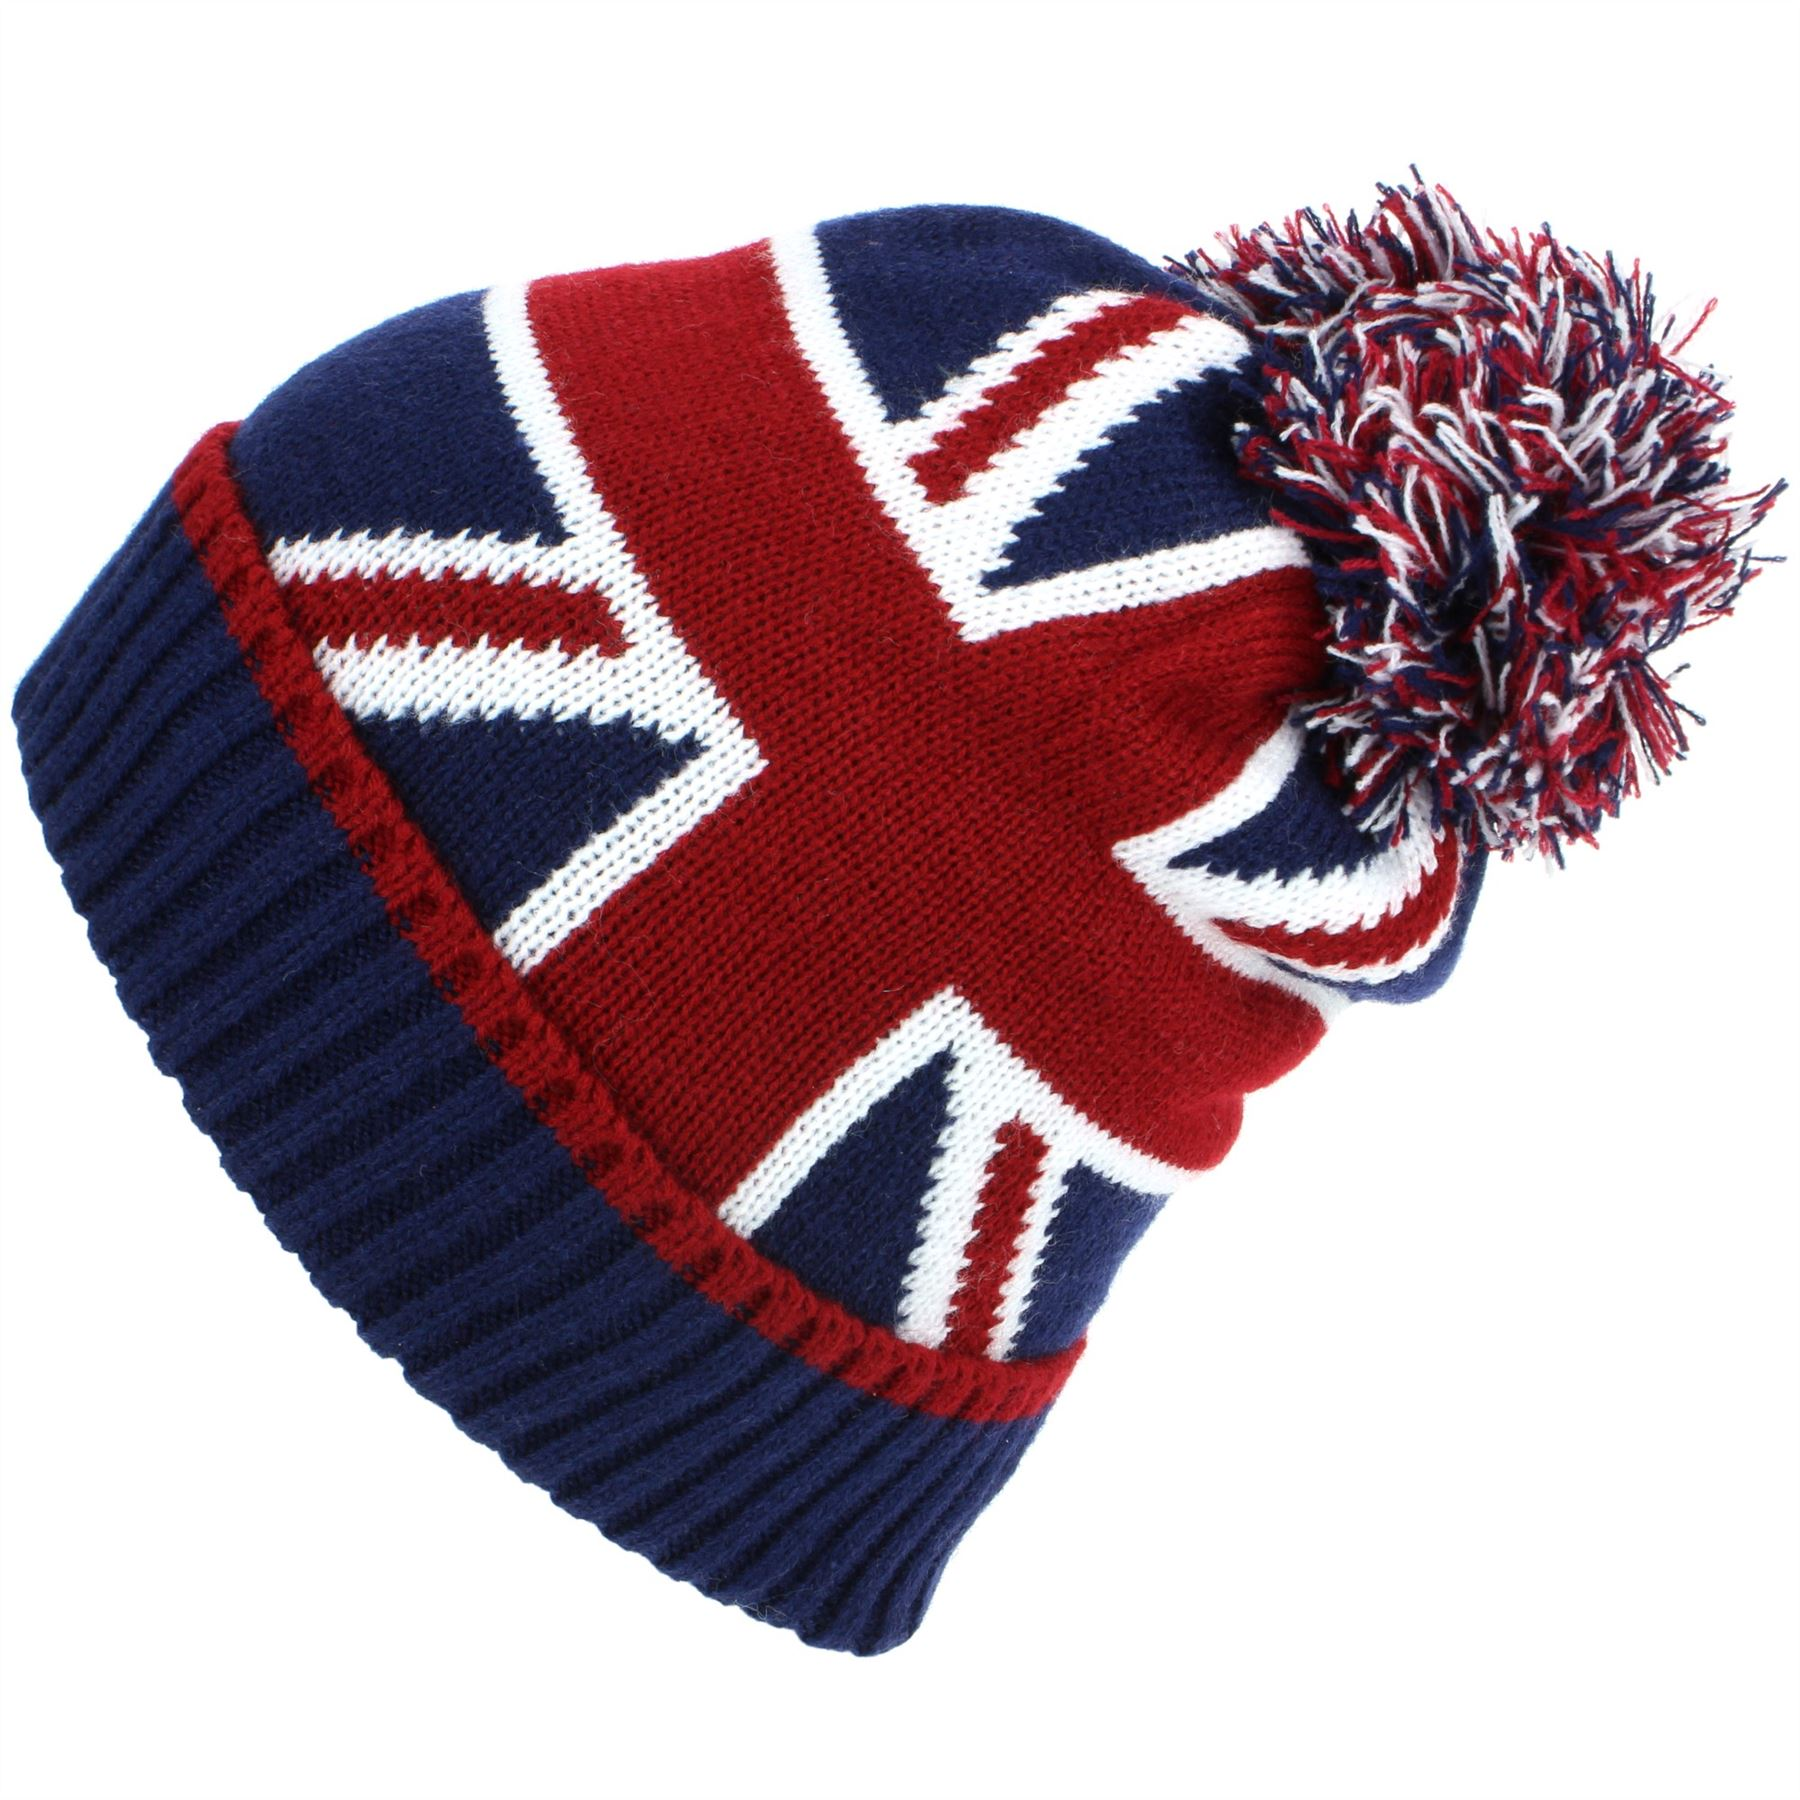 f35dc36322c Beanie Hat Cap Bobble Warm Winter UNION JACK Macahel Soft Lining Men ...